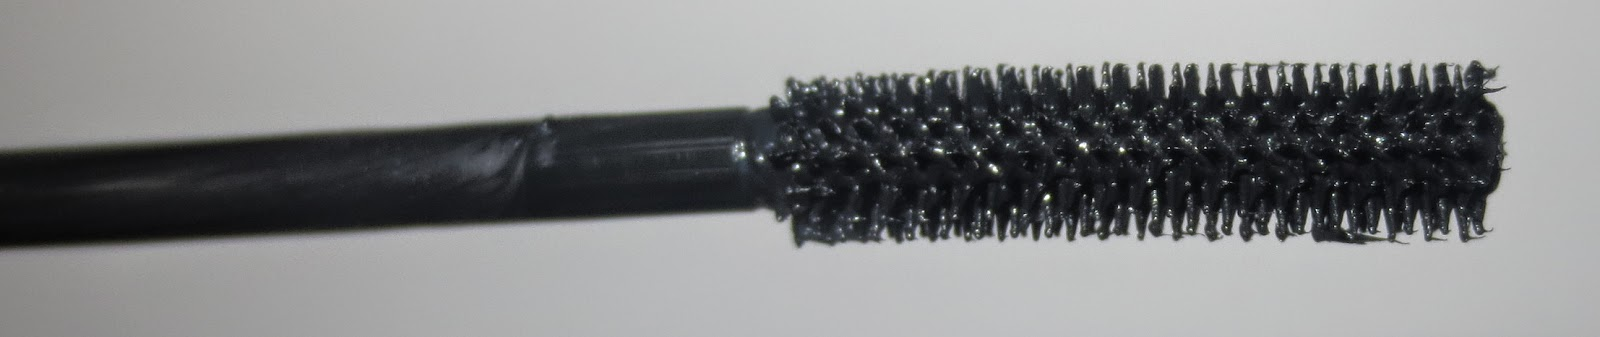 Arbonne It's a Long Story Mascara Brush